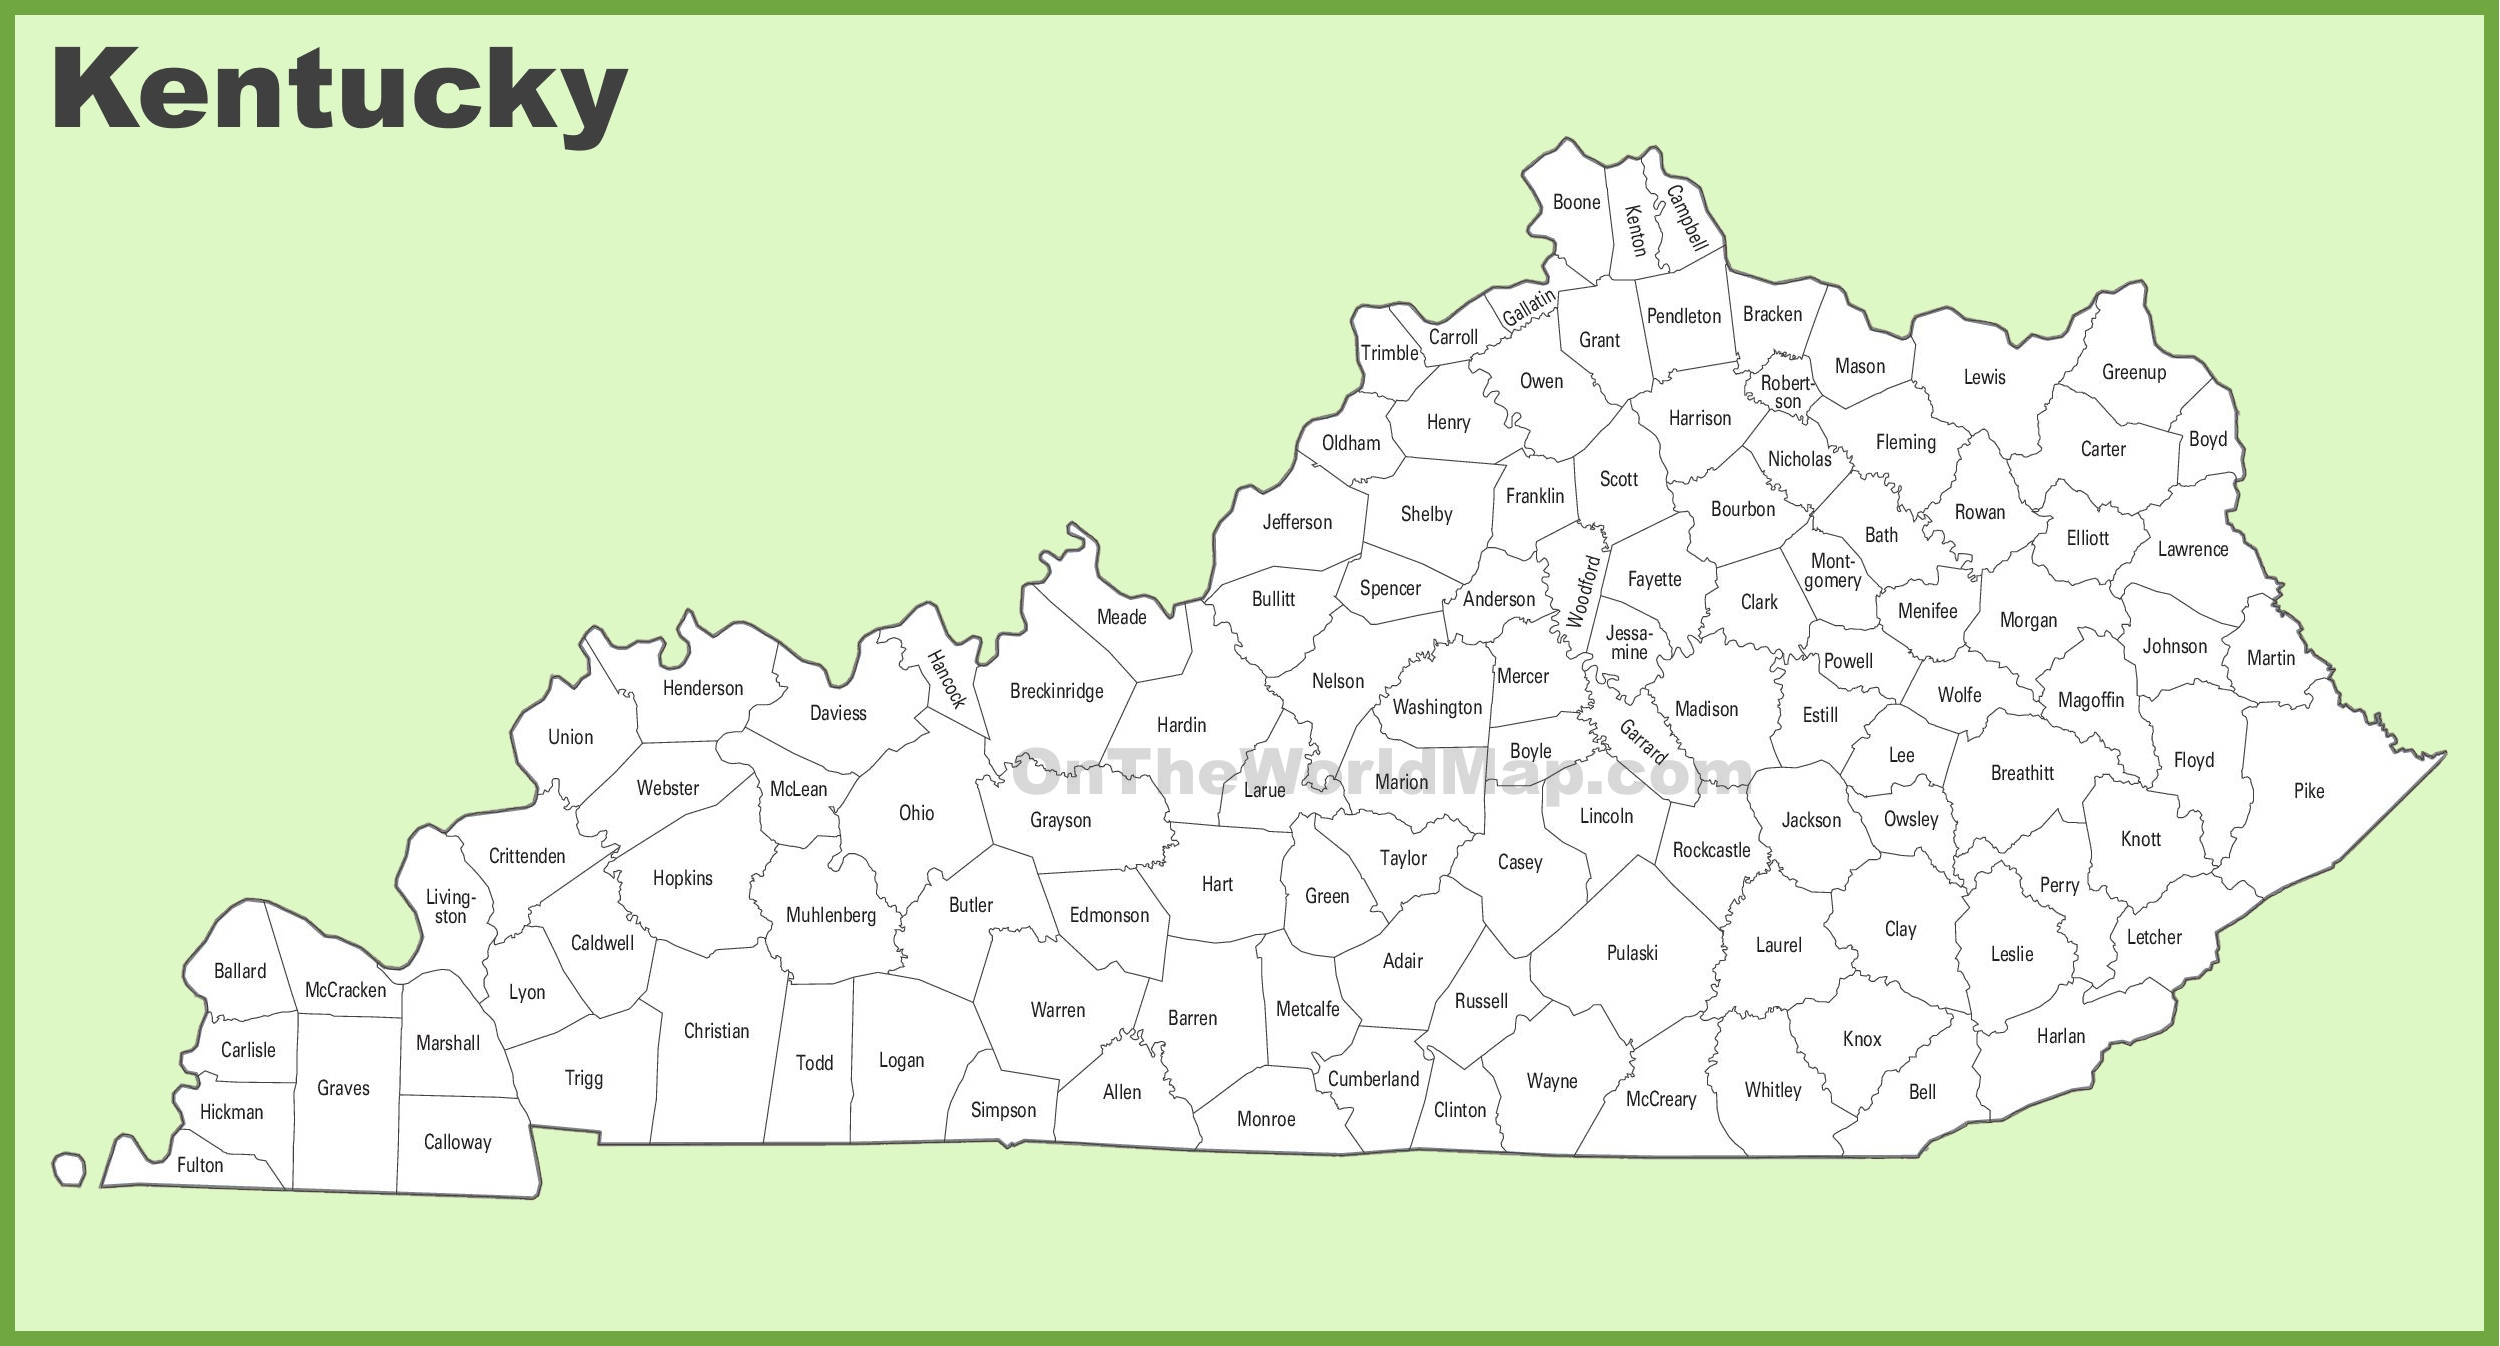 Kentucky State Maps | USA | Maps of Kentucky (KY) on mississippi surrounding states, kentucky and its capital, kentucky map shape, north carolina surrounding states, kentucky outline border, map of tennessee and bordering states, tennessee river map with states, west virginia and surrounding states, kentucky for kentucky, south carolina surrounding states, kentucky missouri border, kentucky state black, usa map with states, kentucky bordering states, illinois surrounding states, kentucky politics, kentucky area map, map of chicago and surrounding states, kentucky basketball, kentucky state largest city,